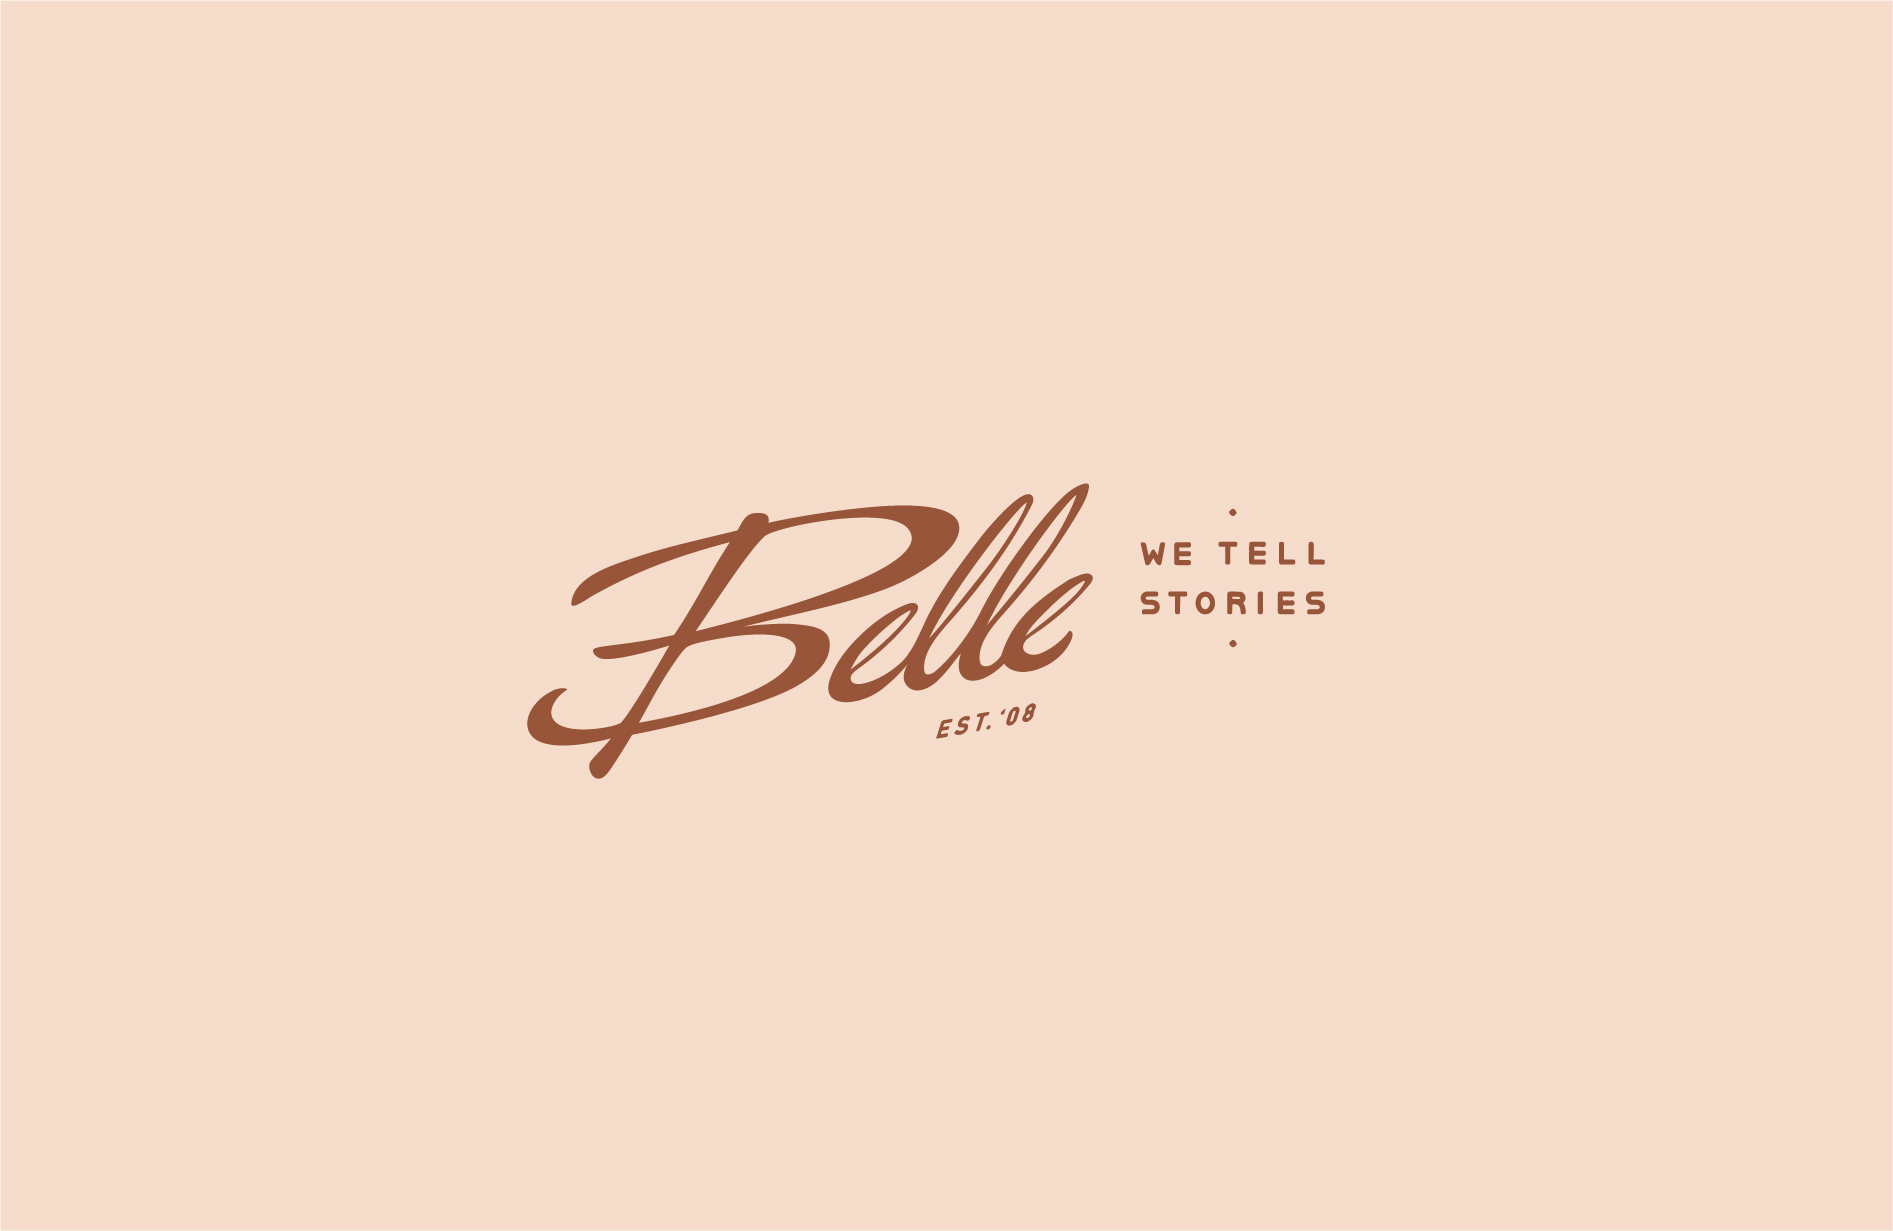 belle_logo_design_efrat_or_עיצוב_גפי_לוגו@4x-100